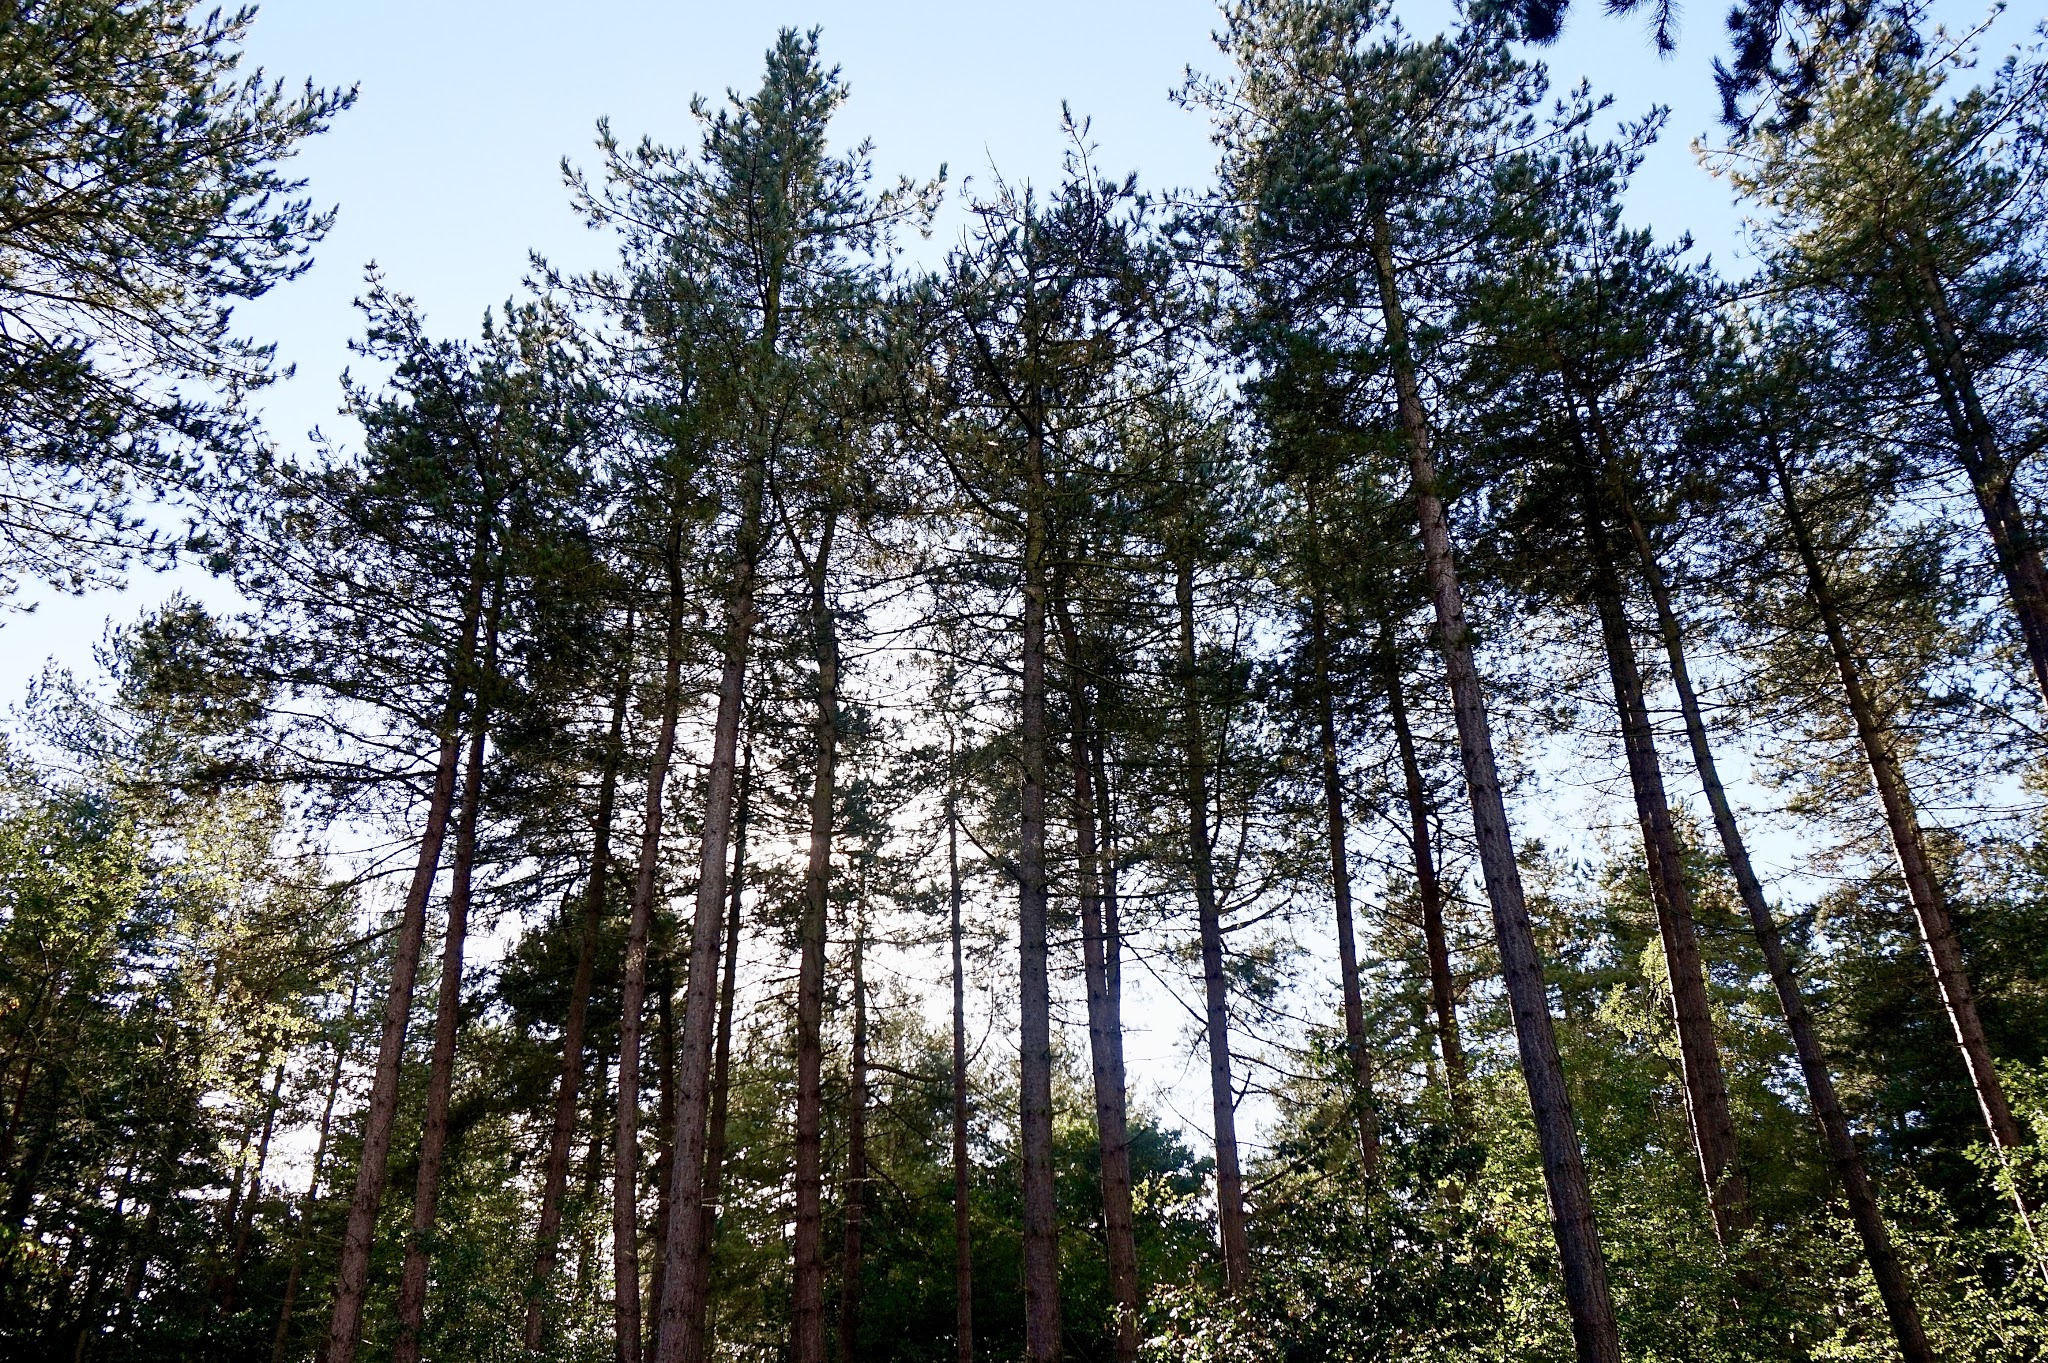 blue sky through tall trees in forest